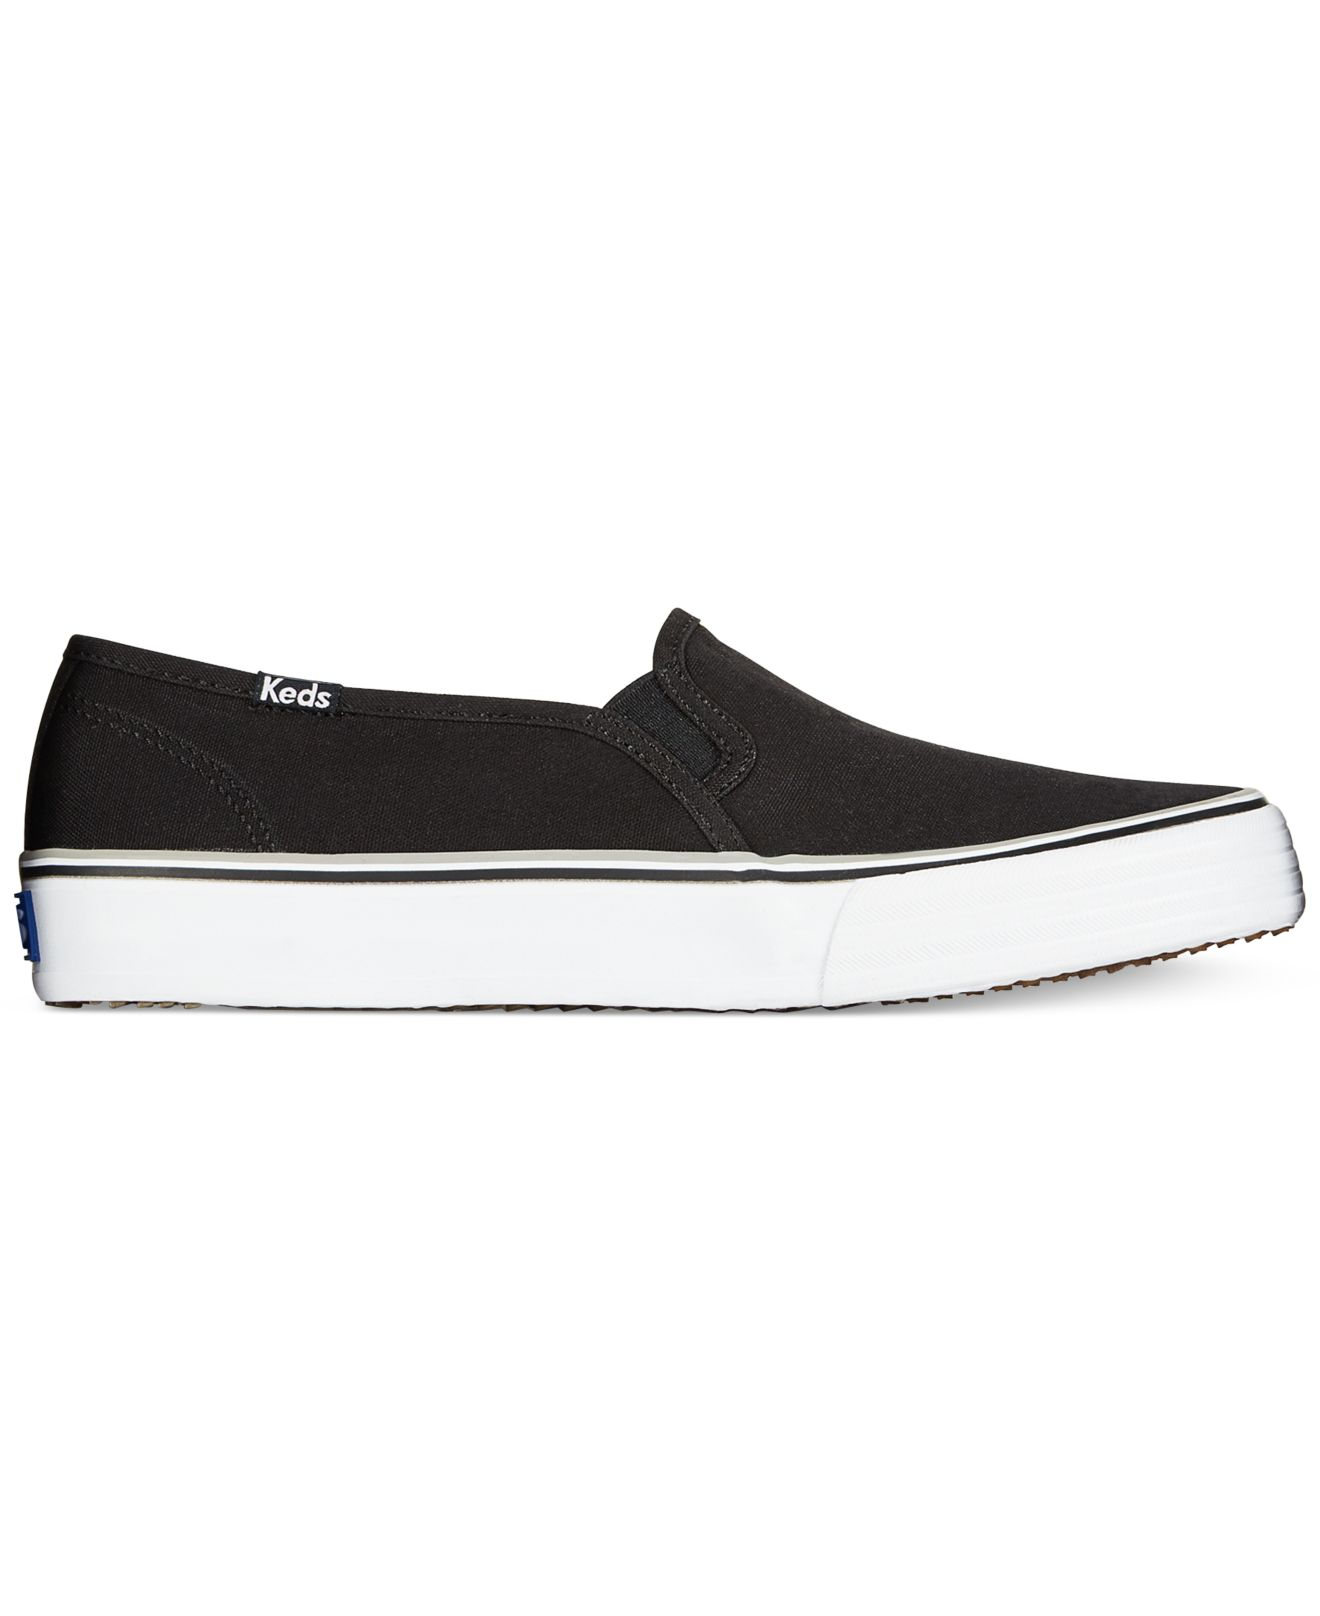 womens black keds slip ons